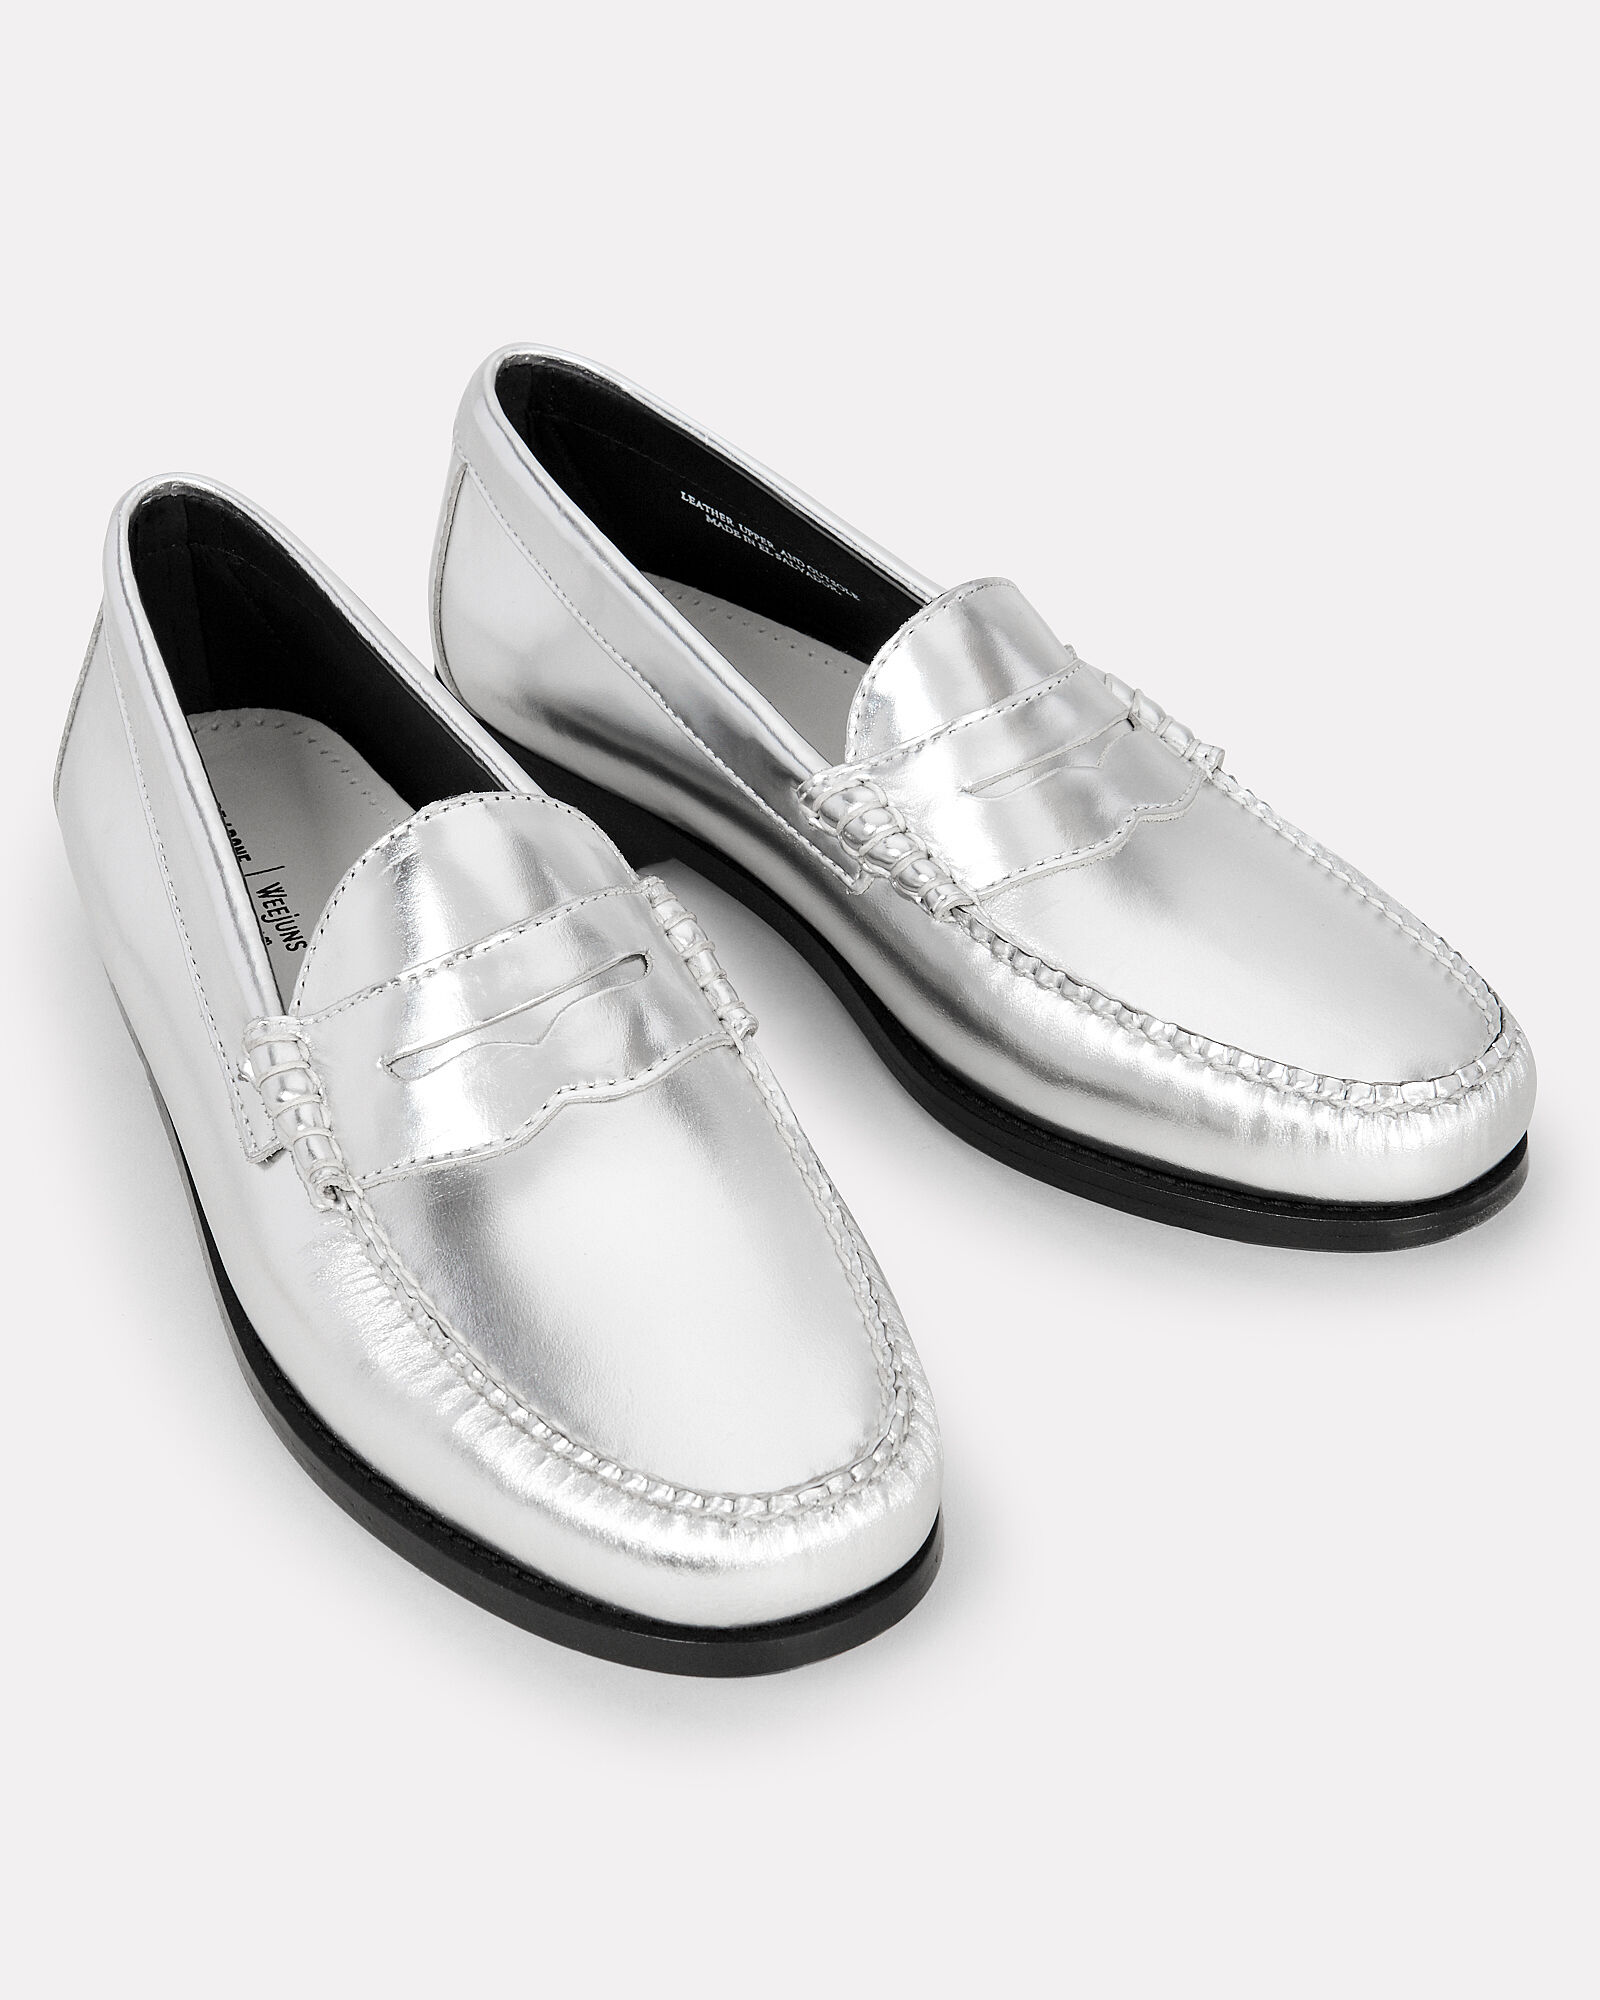 2478f8f6d41 Whitney metallic silver loafers silver jpg 1600x2000 Silver loafers